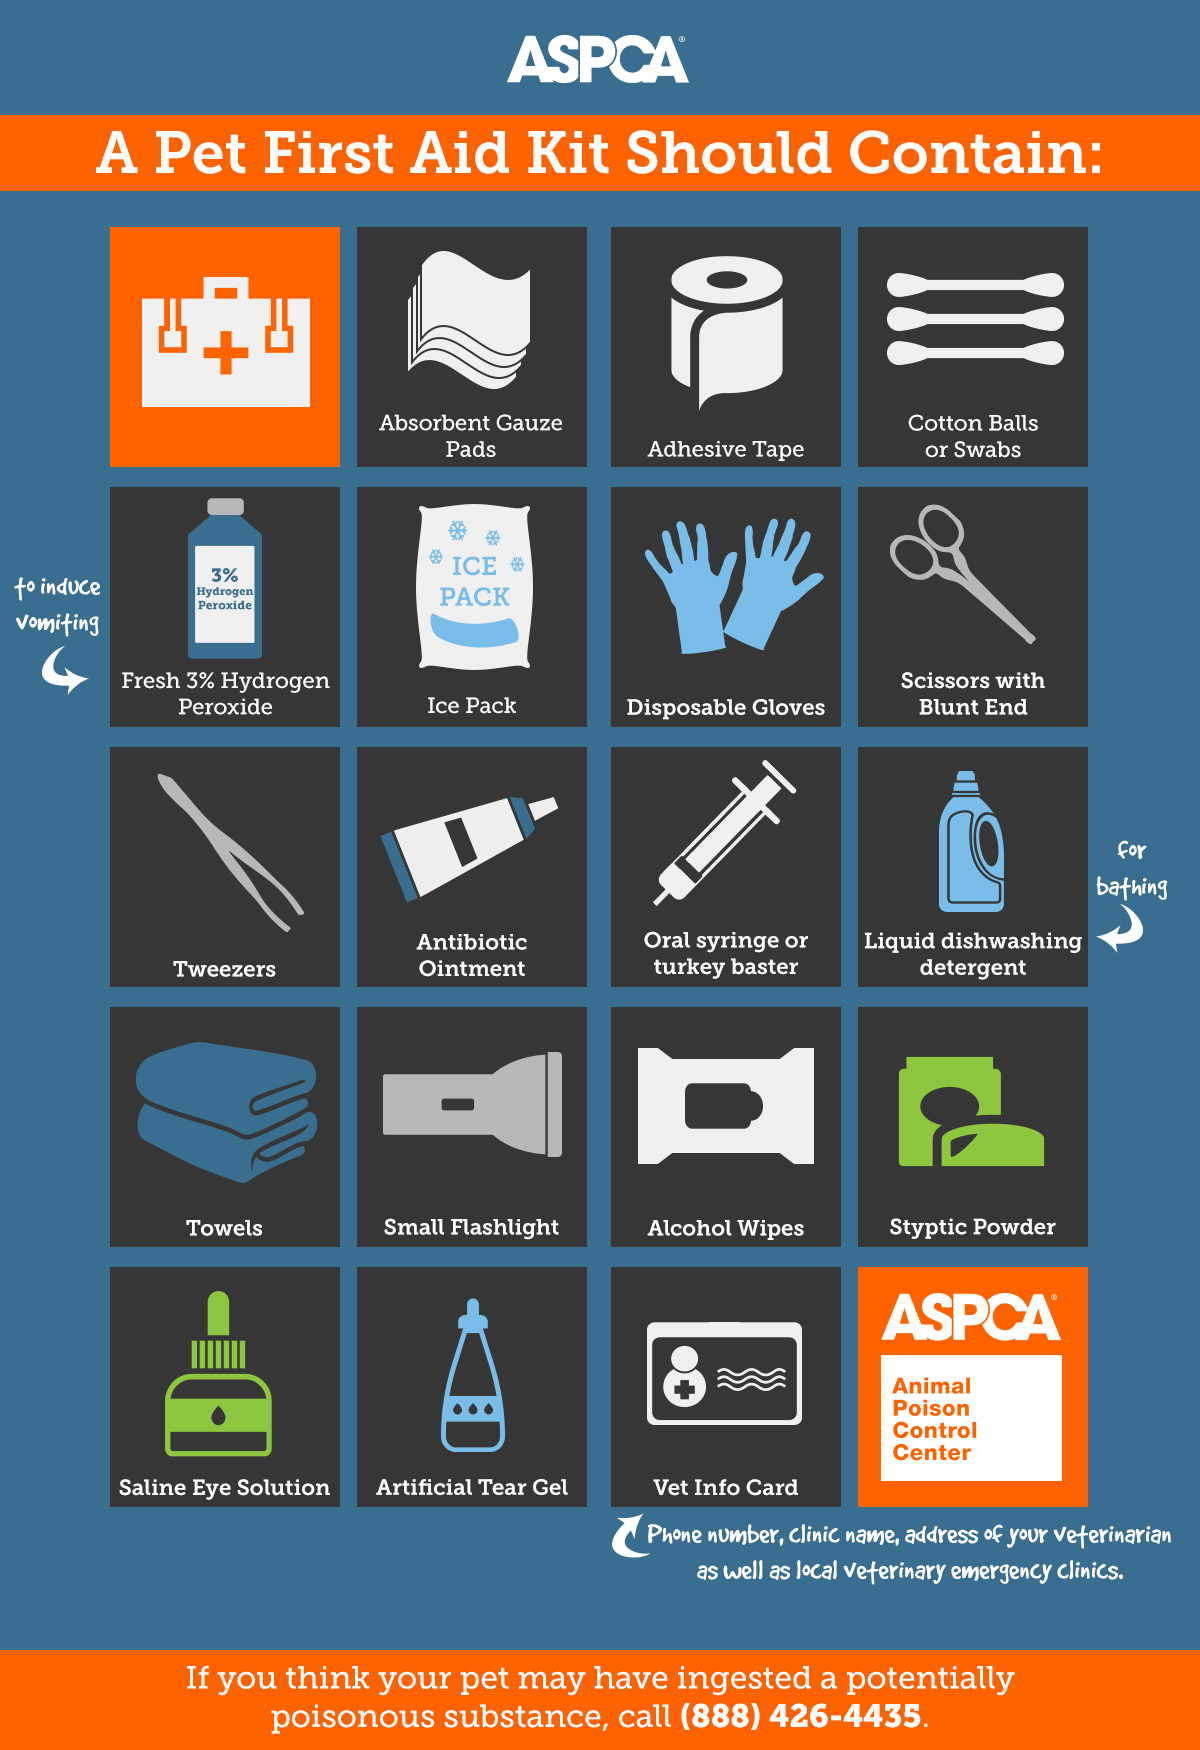 ASPCA pet-first-aid-kit-infographic.jpg